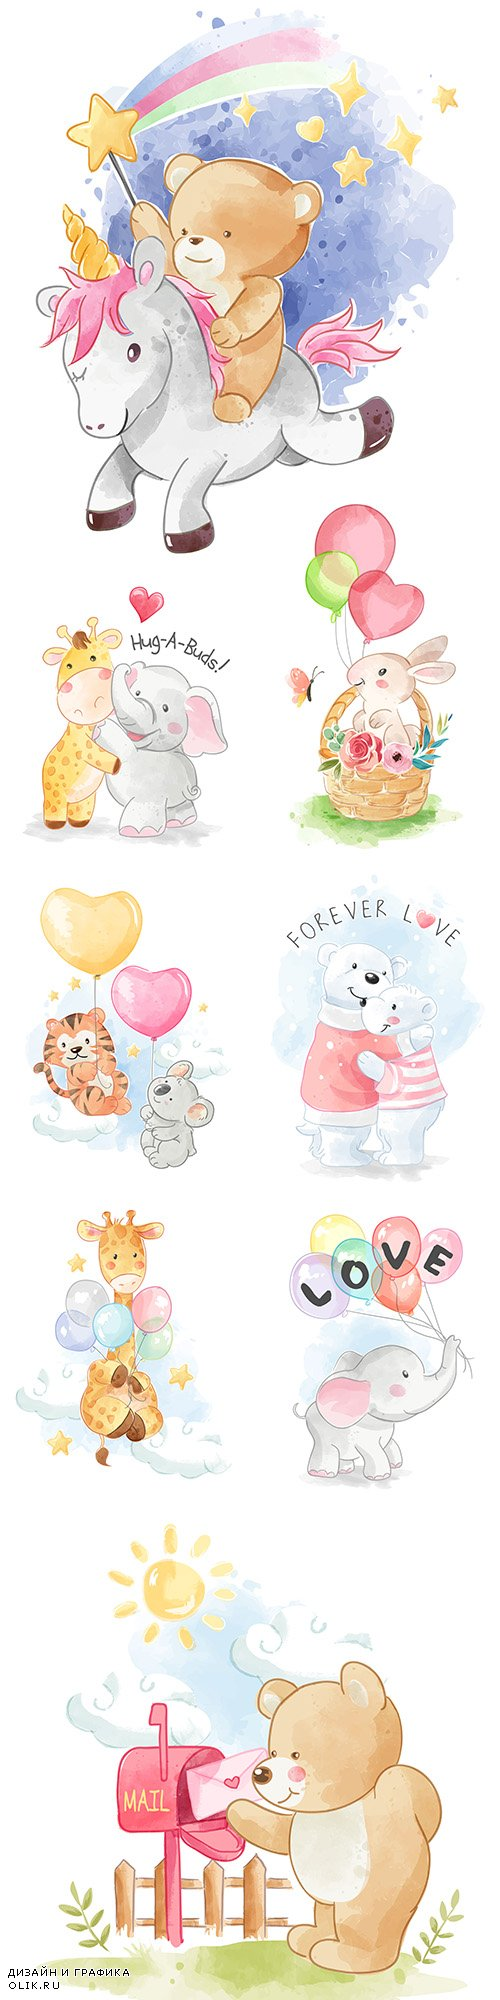 Funny animals drawing cartoon watercolor illustrations 15